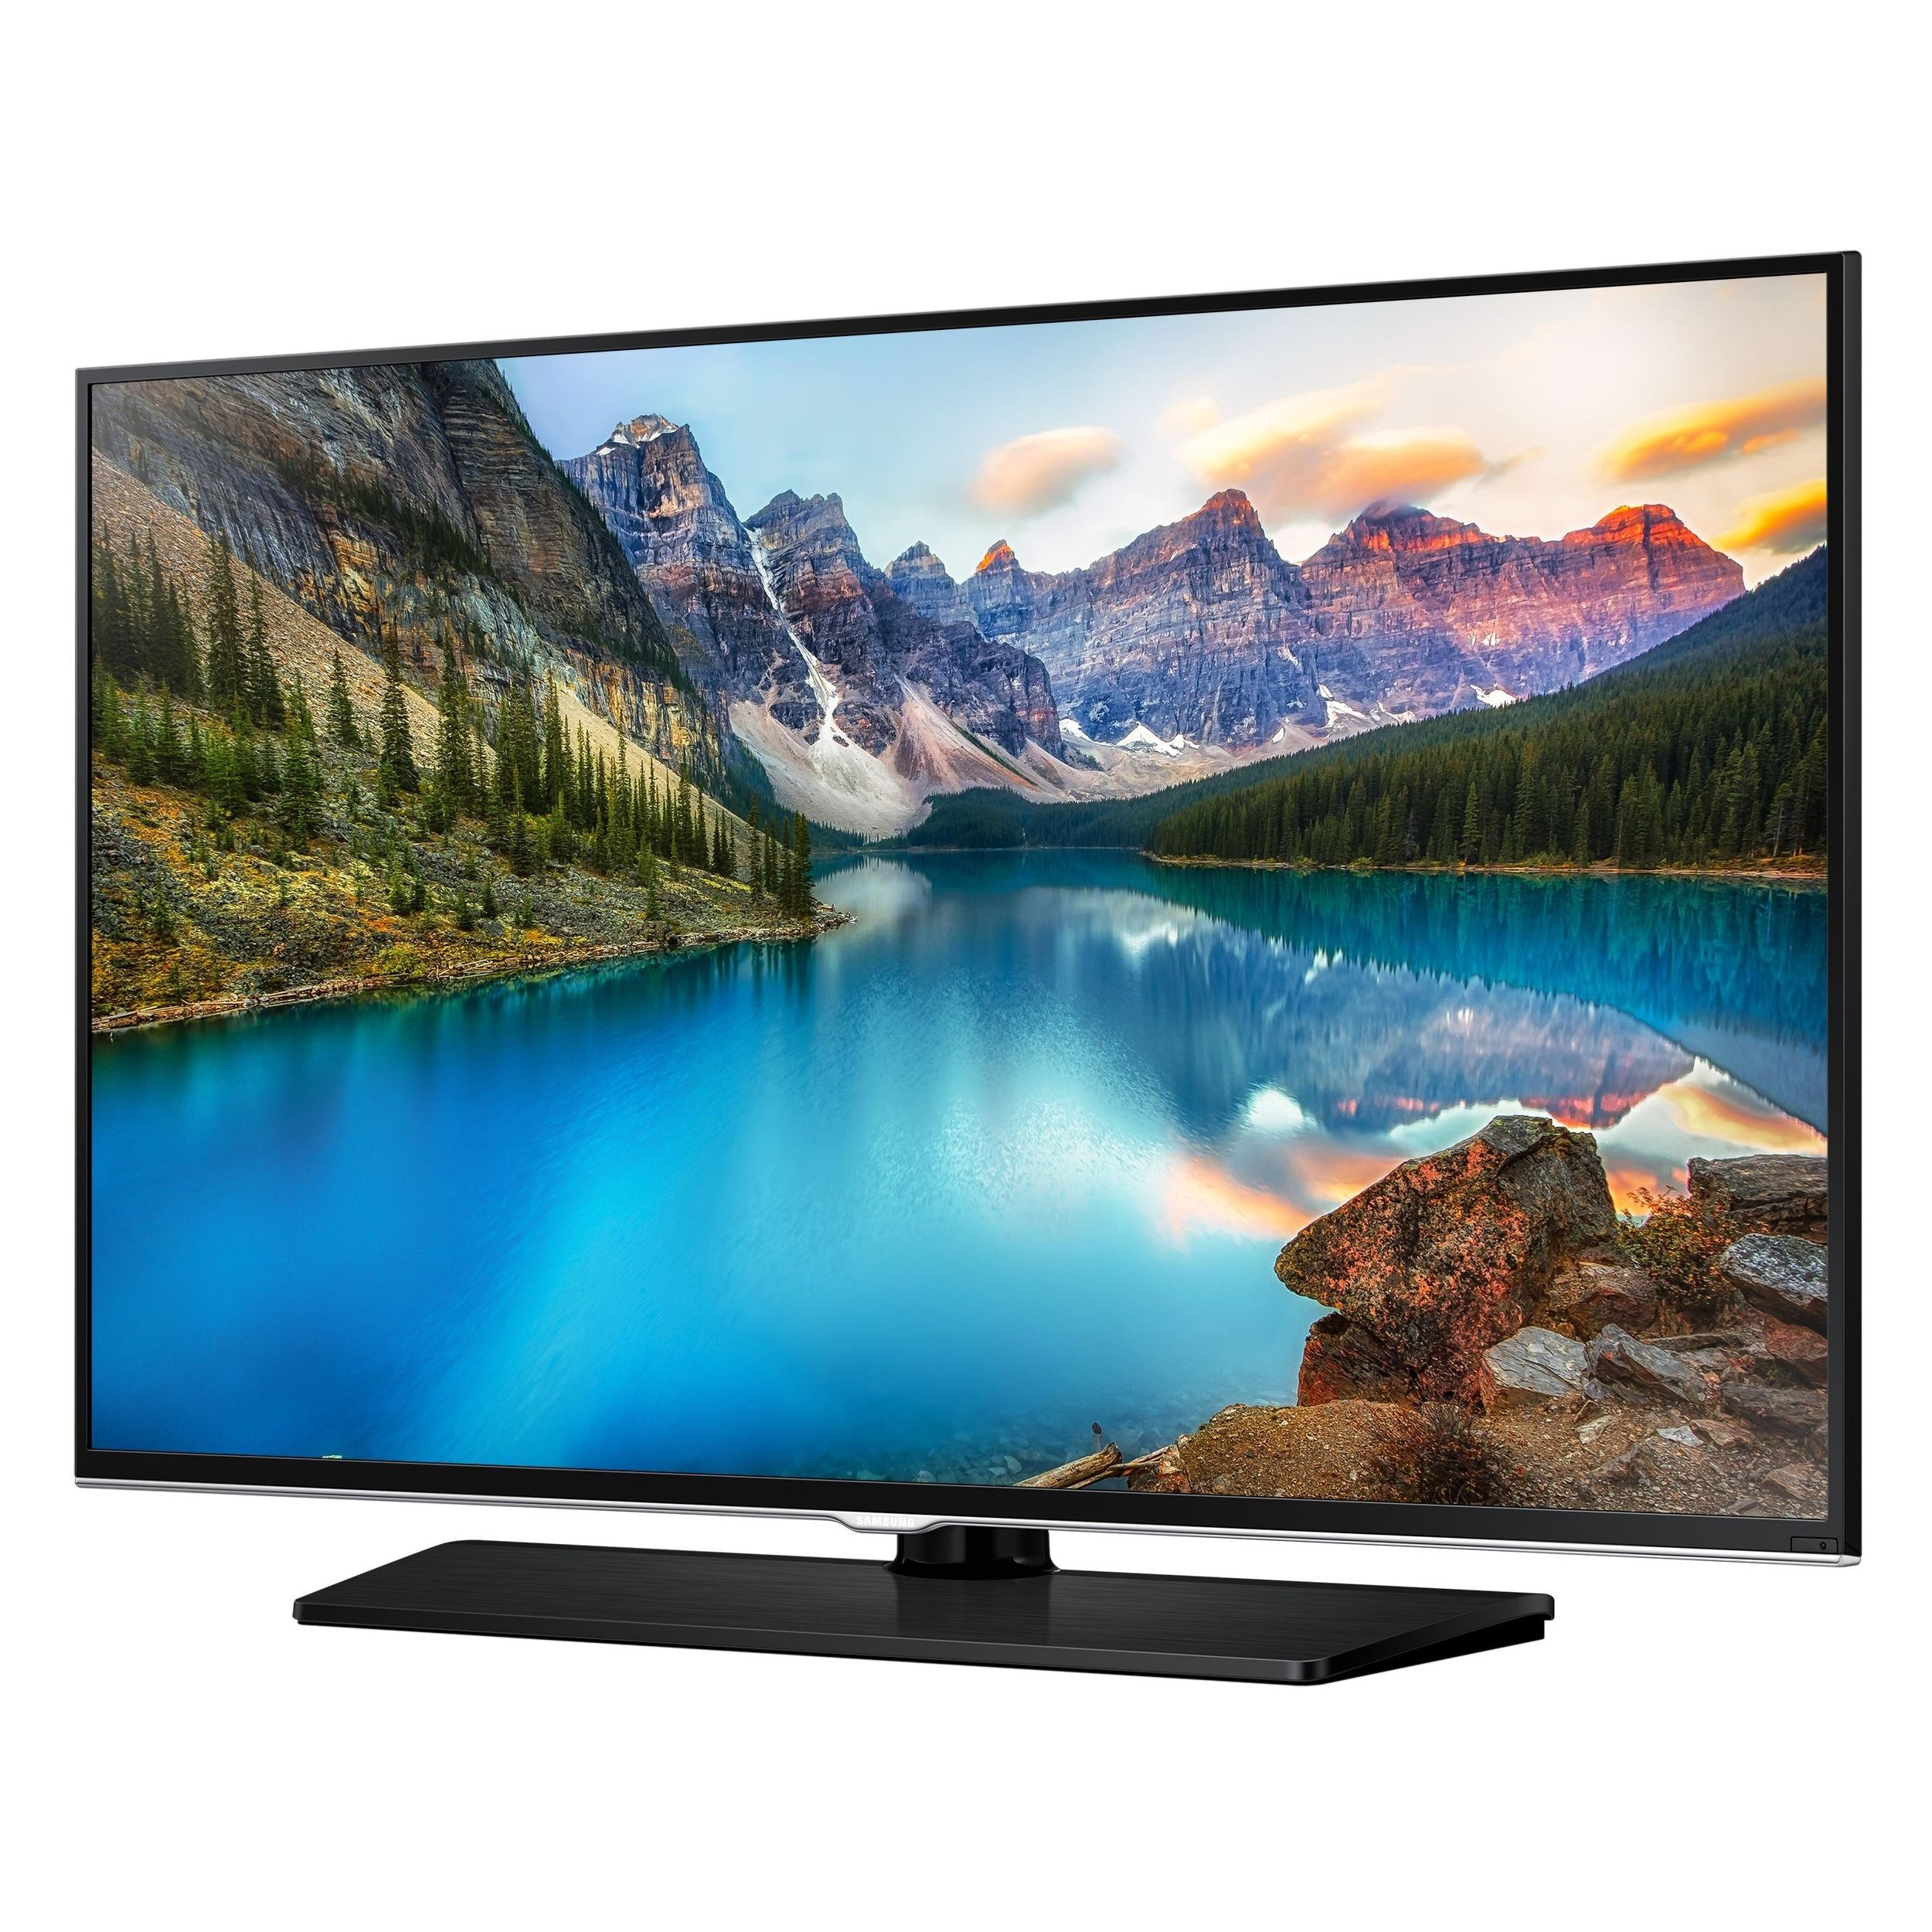 Samsung UN50JU650DF LED TV Driver Windows